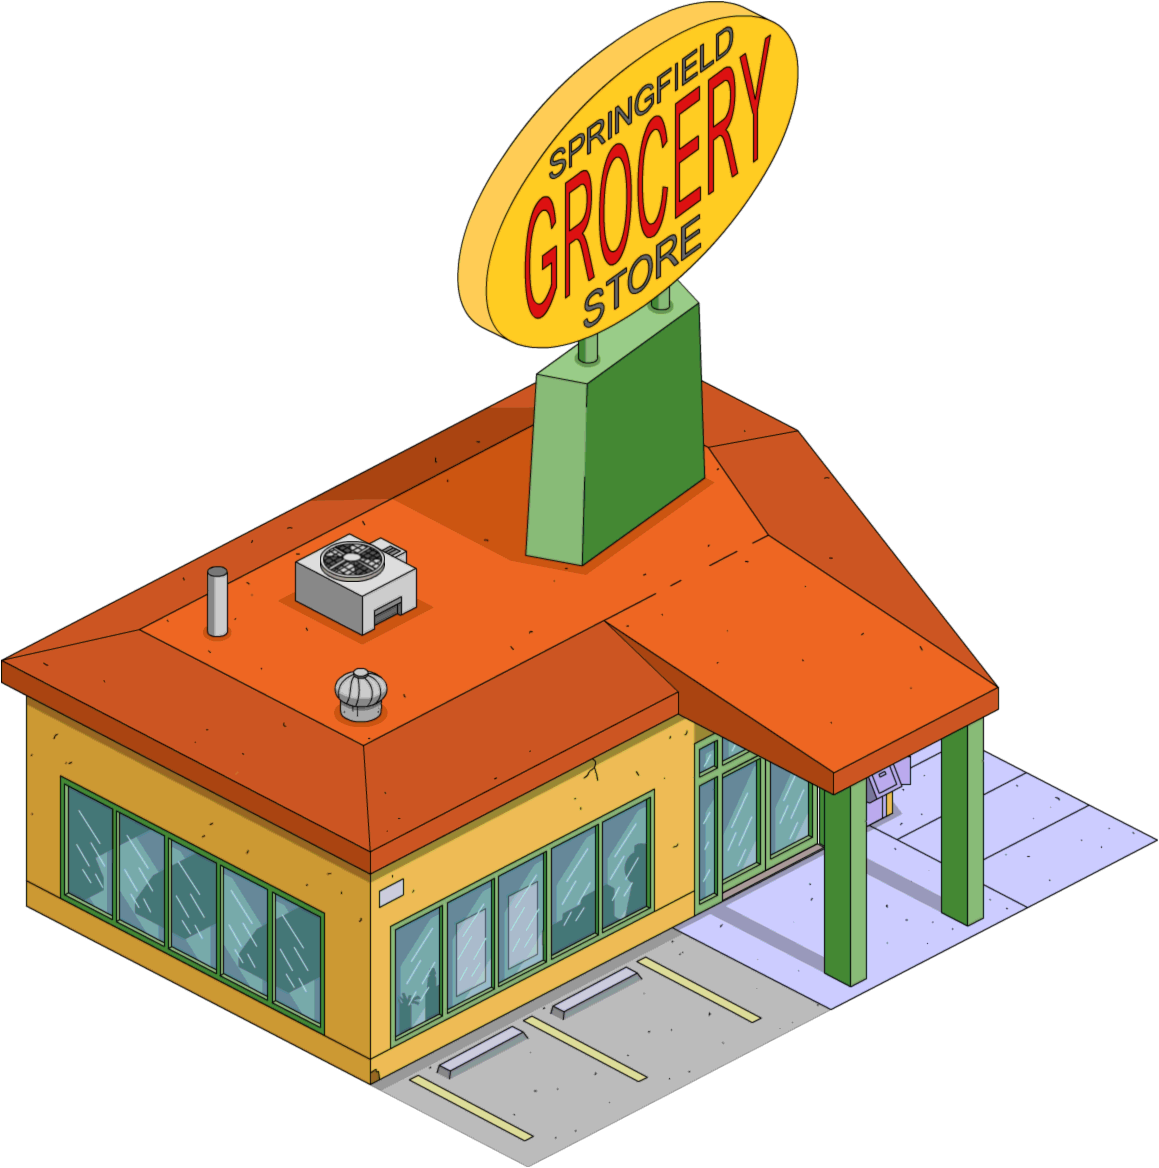 vector royalty free download Supermarket clipart outside. Picture of grocery store.